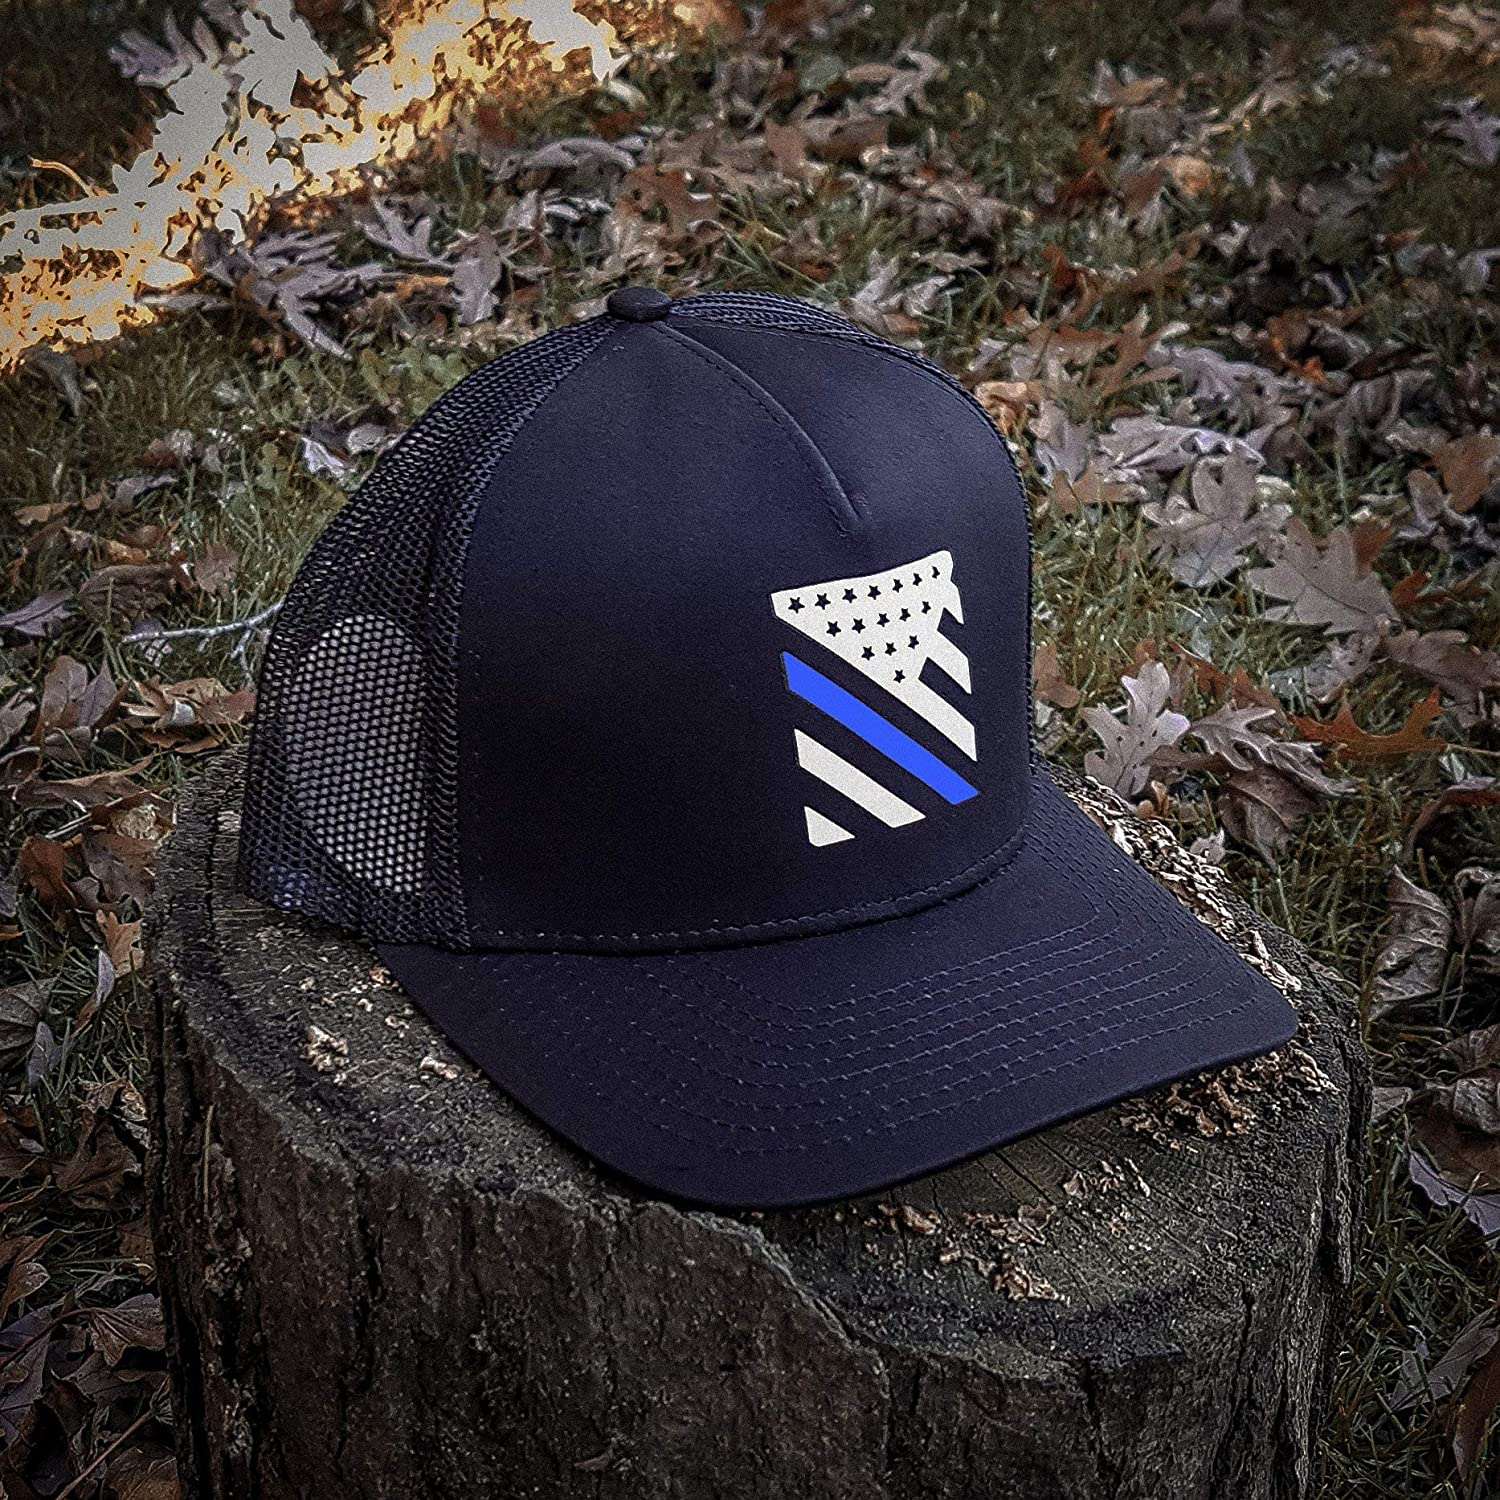 3593c40c6e8 Tactical Pro Supply Thin Blue Line Crest American Flag Snapback Hat at  Amazon Men's Clothing store: